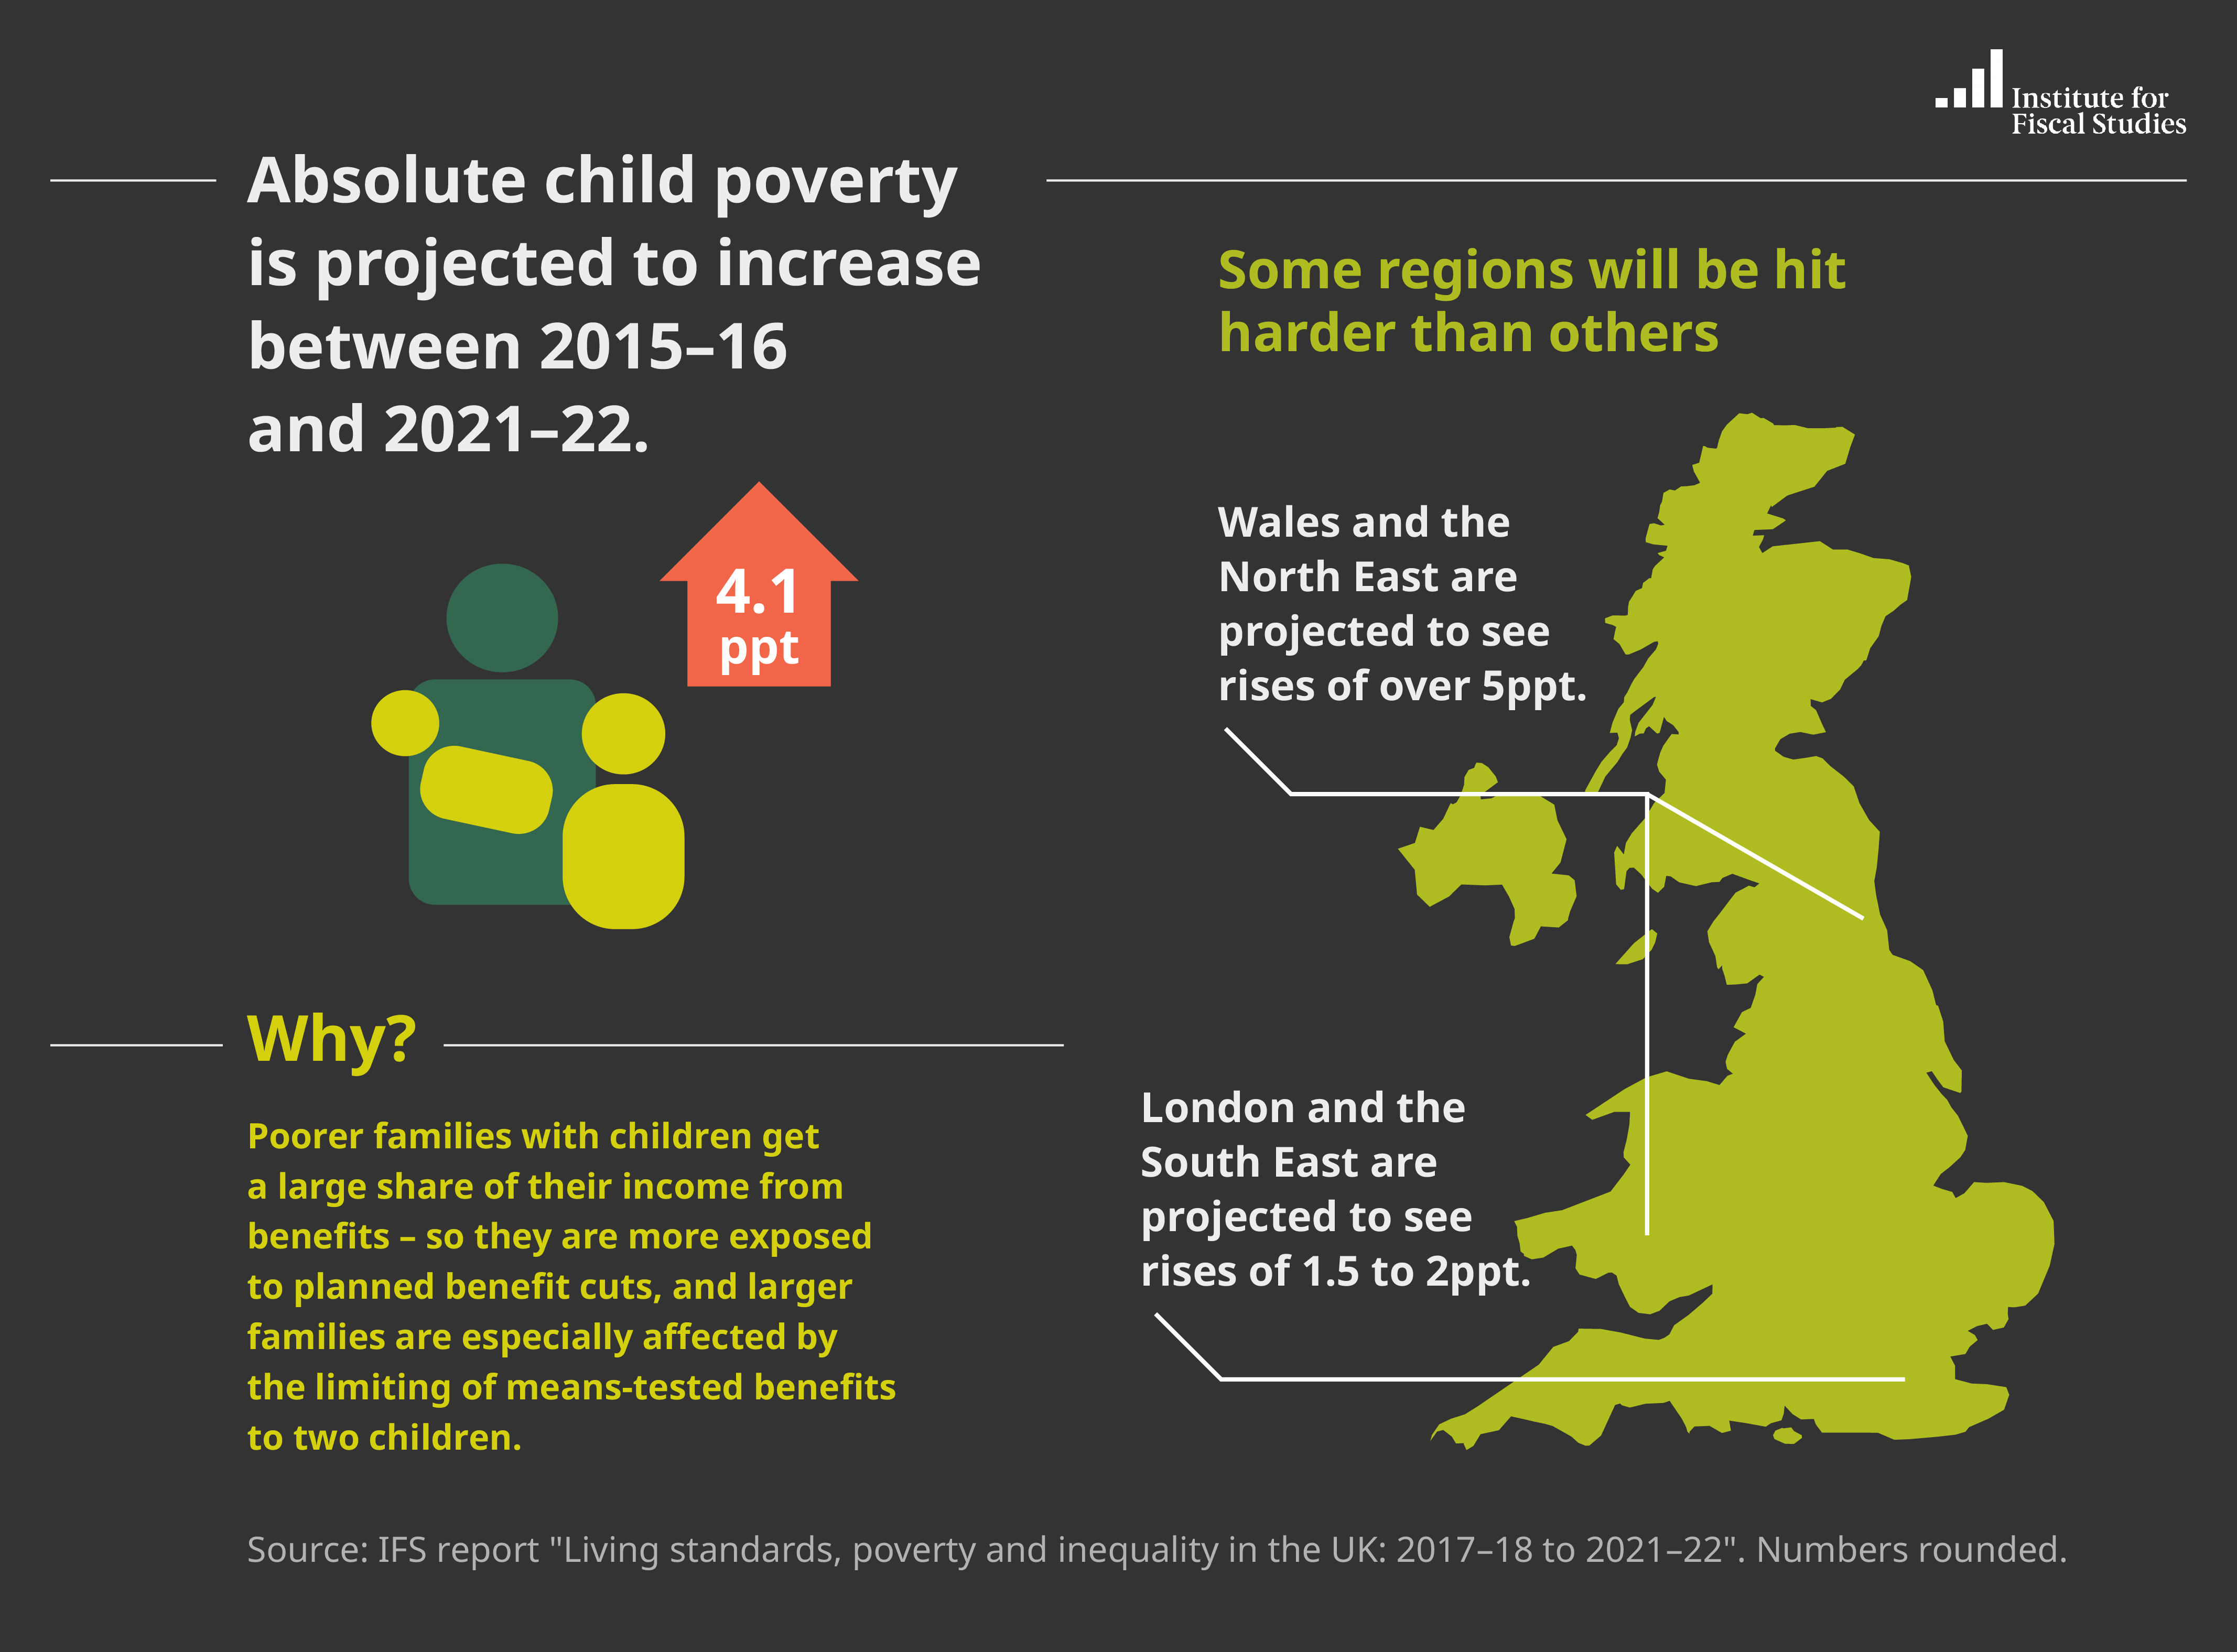 living_standards_poverty_and_inequality_in_the_uk_2017_18_to_2021_22